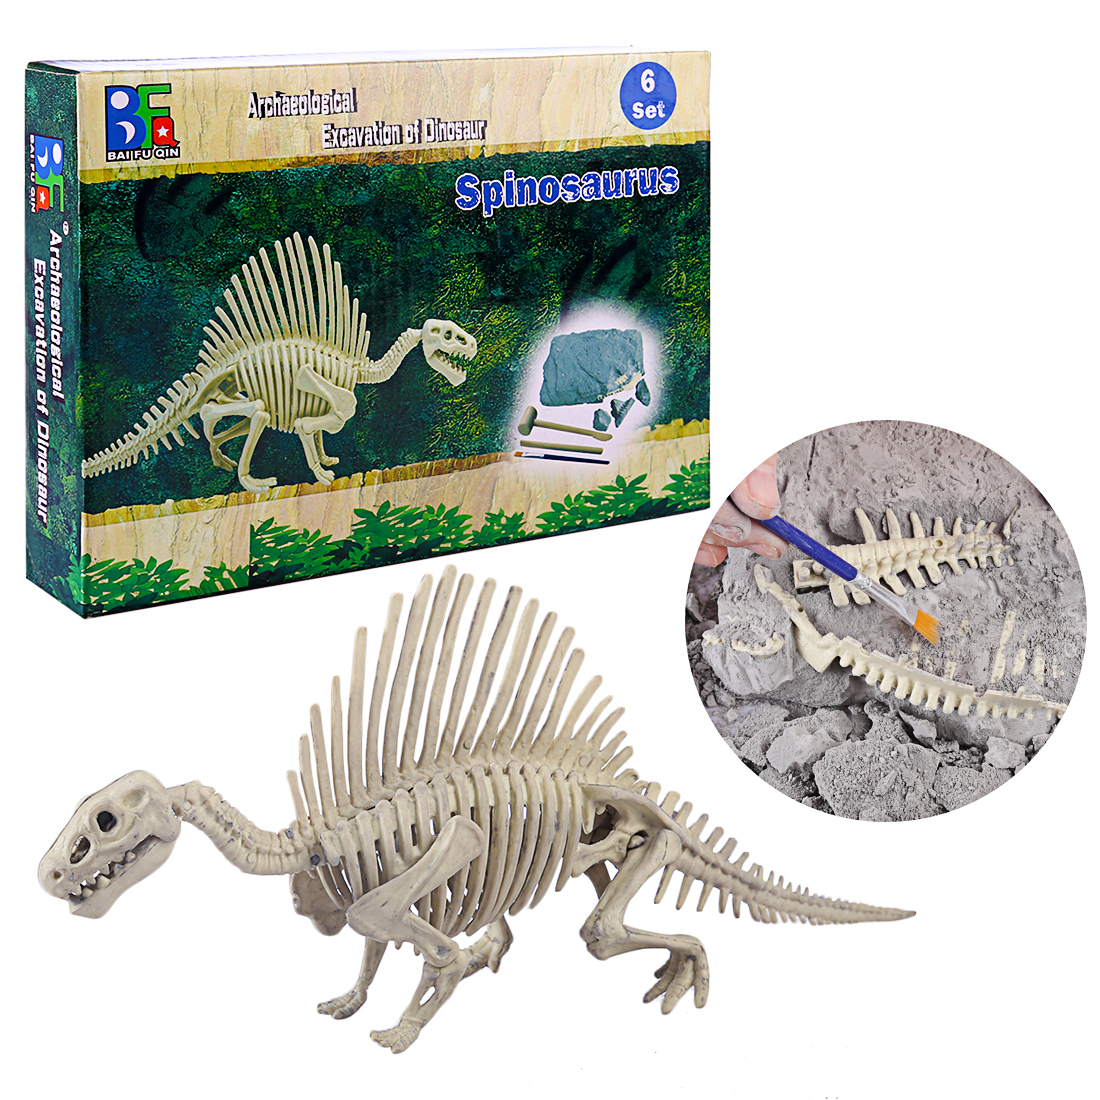 Children Creative Educational Dinosaur Archaeology Excavation Toys - Spinosaurus  Ceratosaurus